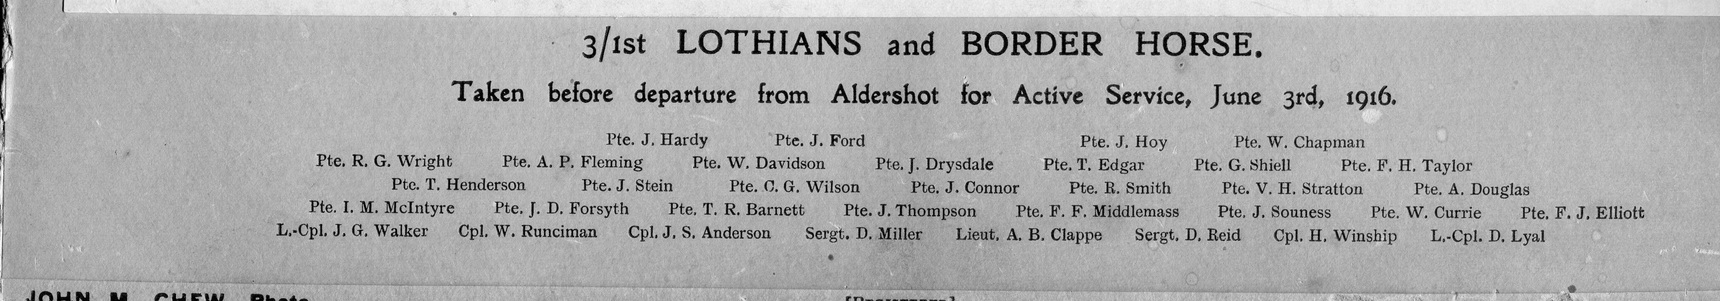 3/1st Lothain And Border Horse List Of Names 1916